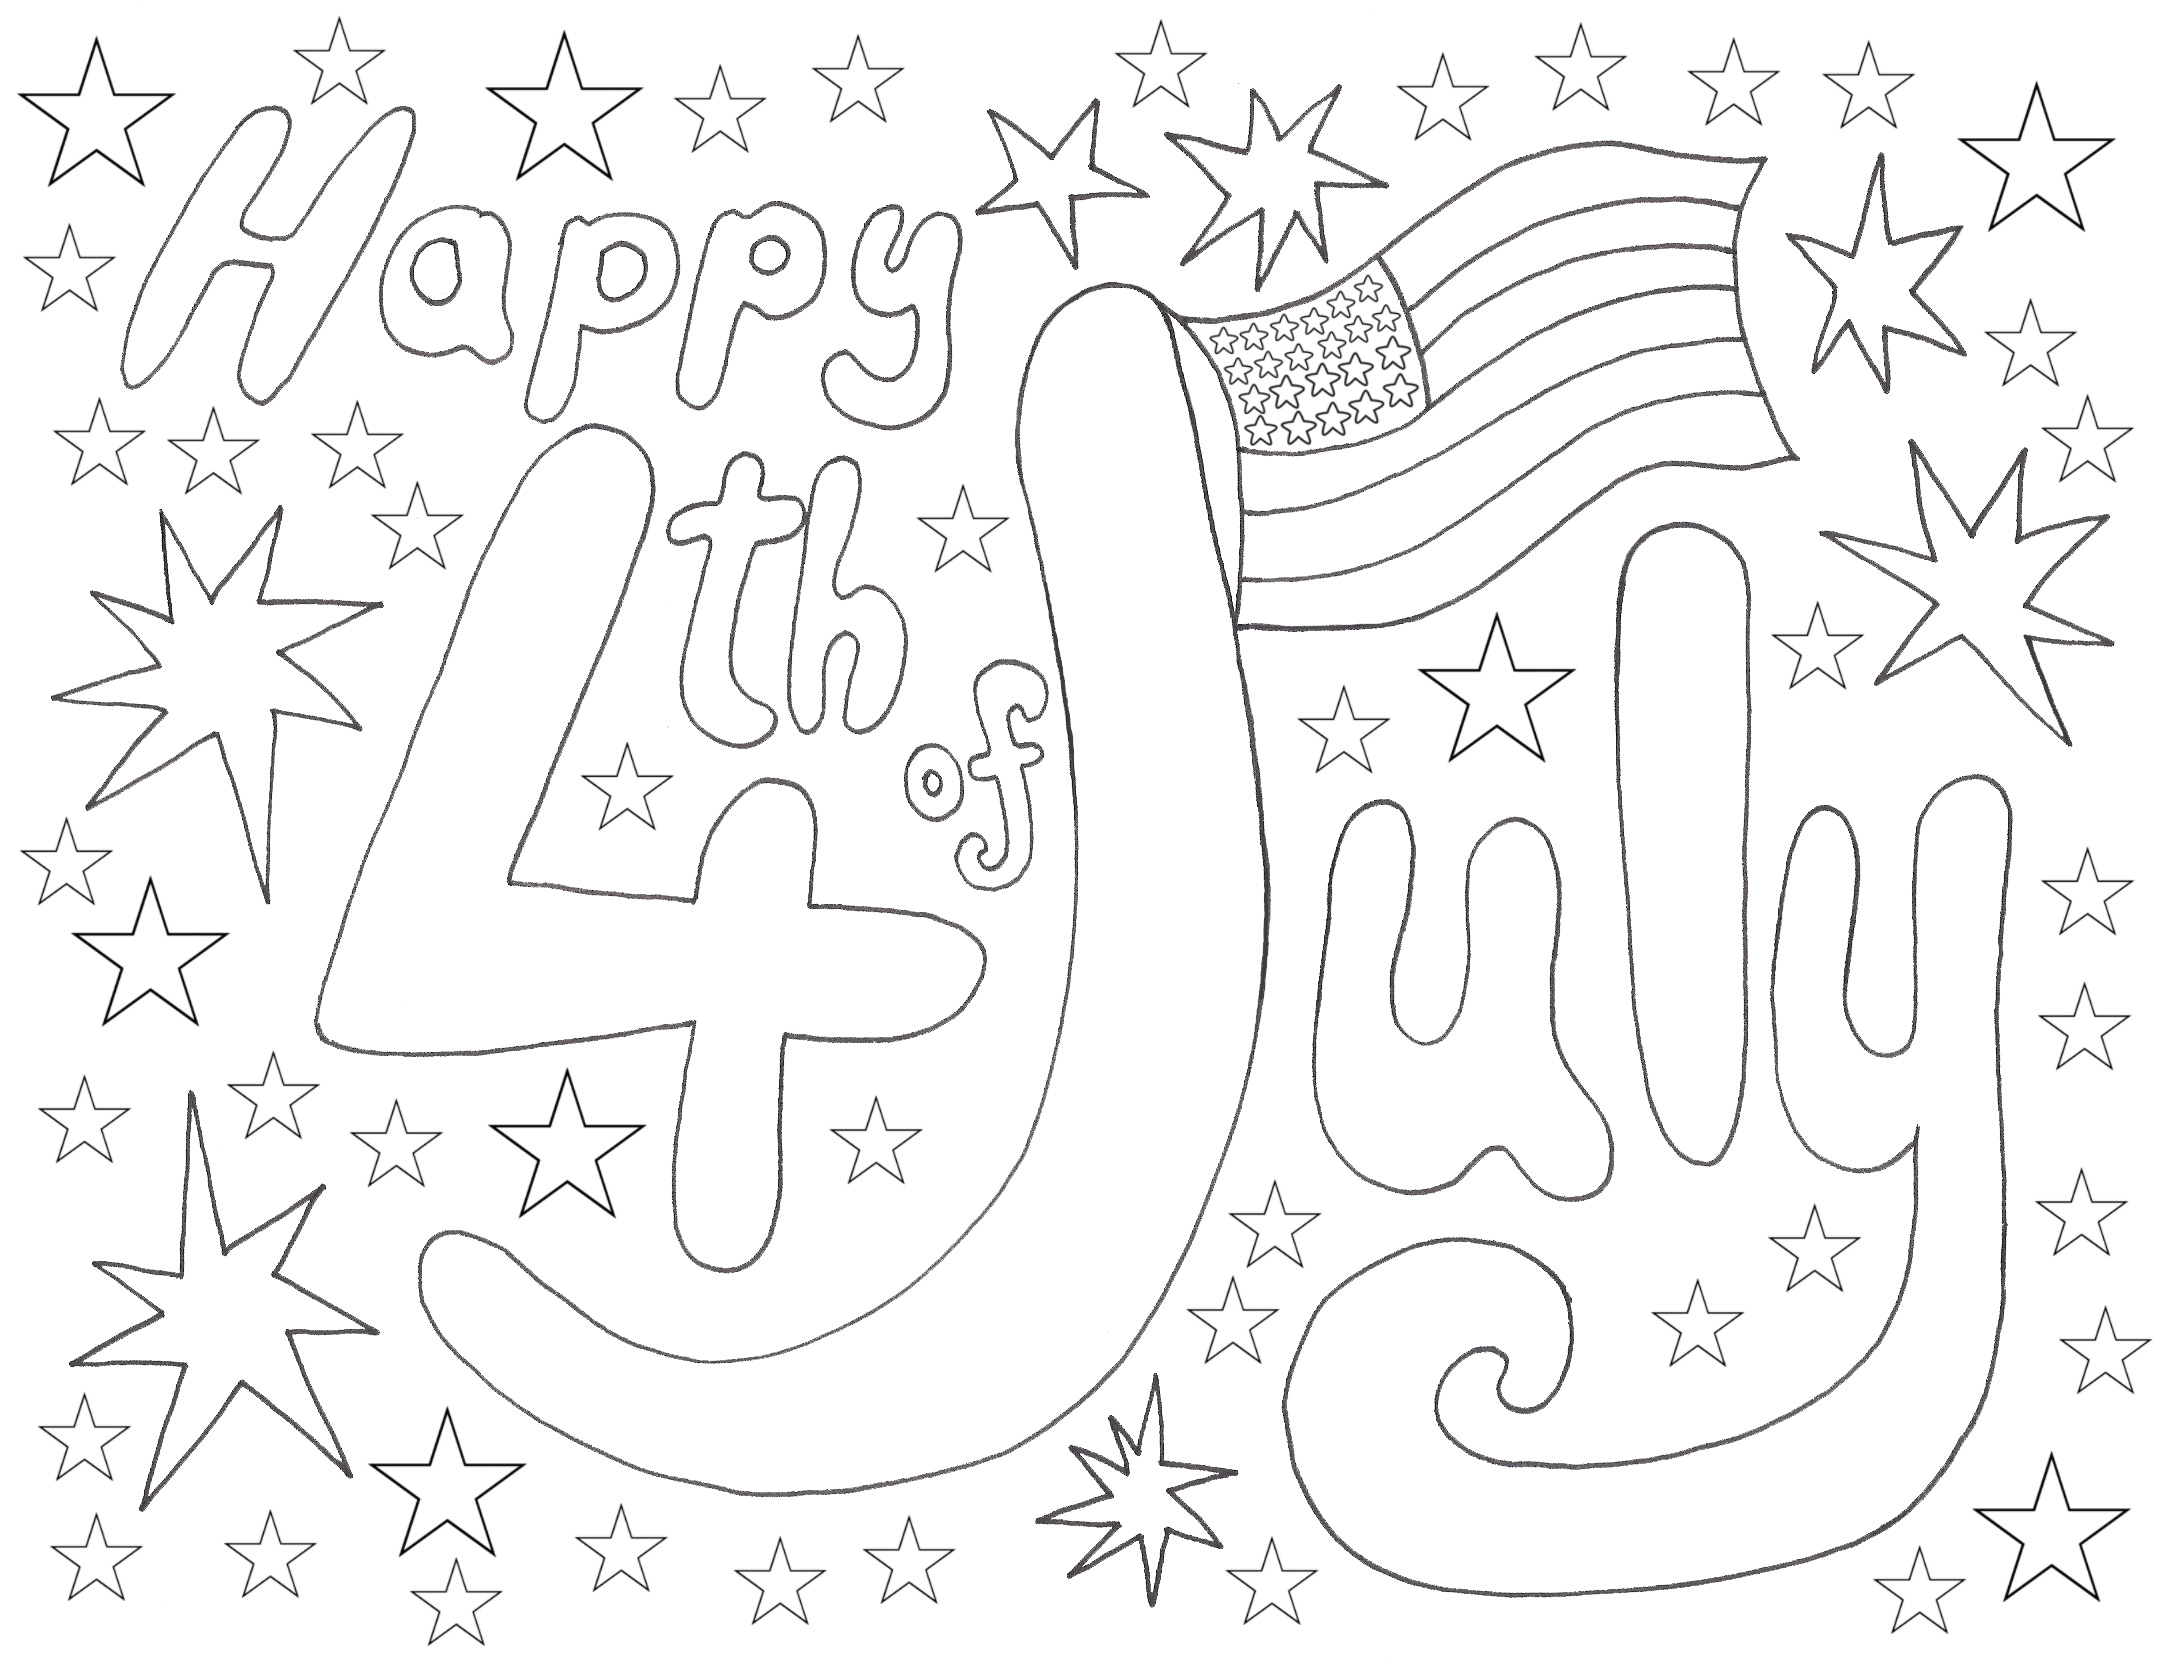 4th Of July Coloring Pages 10 July 4 Coloring Pages Adorable 4th Of July Color 4th Of July